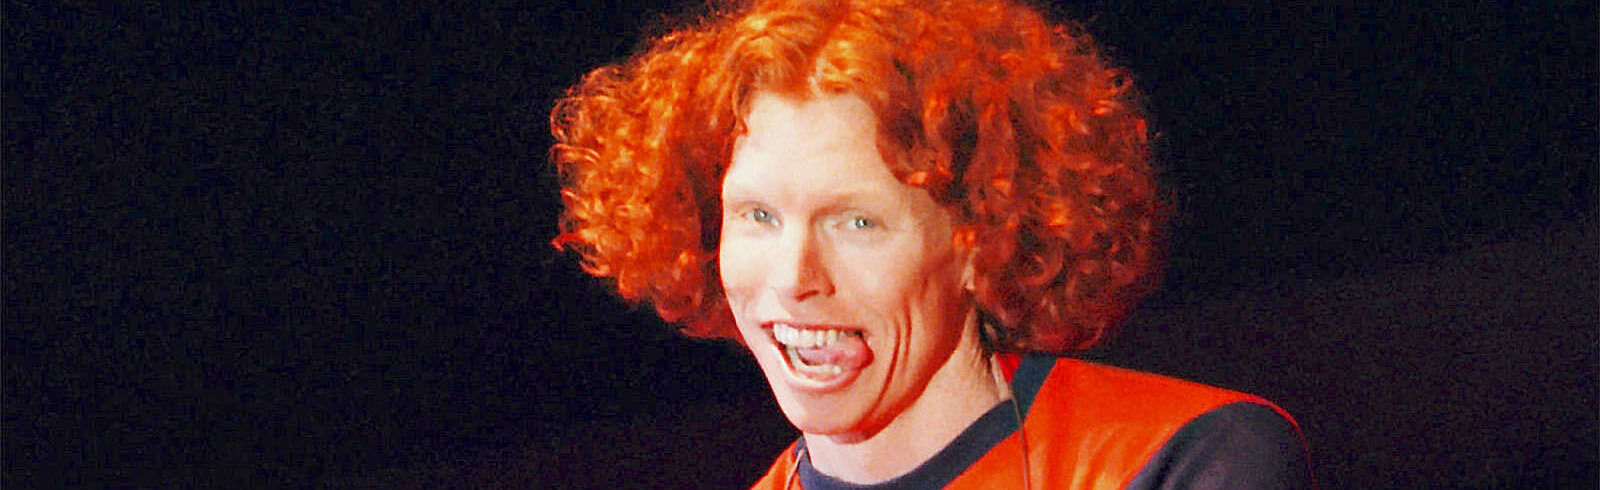 Carrot Top Tickets (18+ Event)